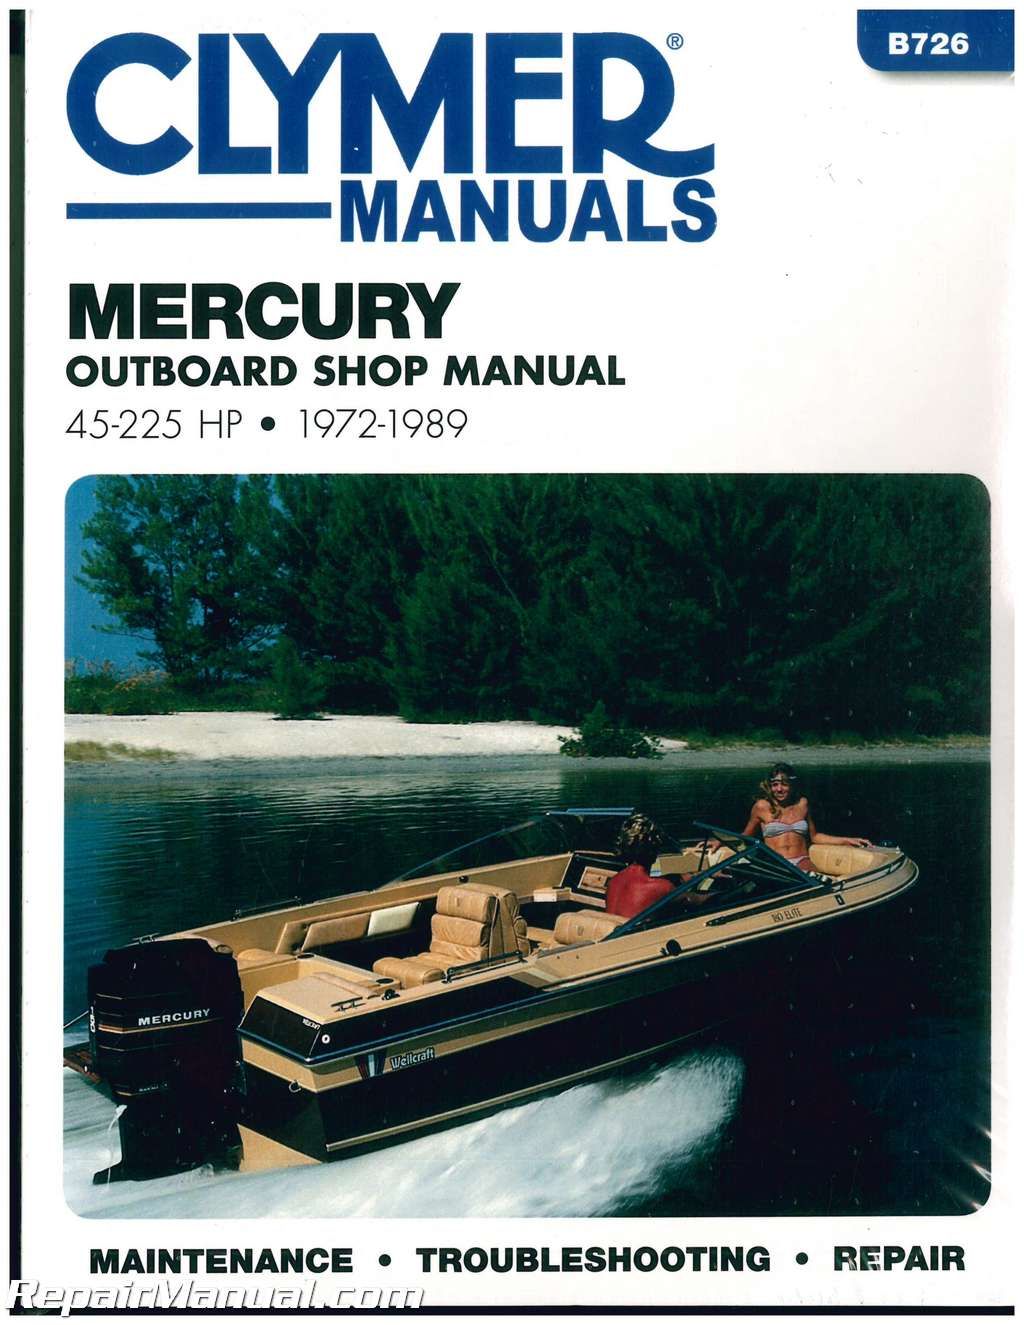 35 hp mercury outboard service manual